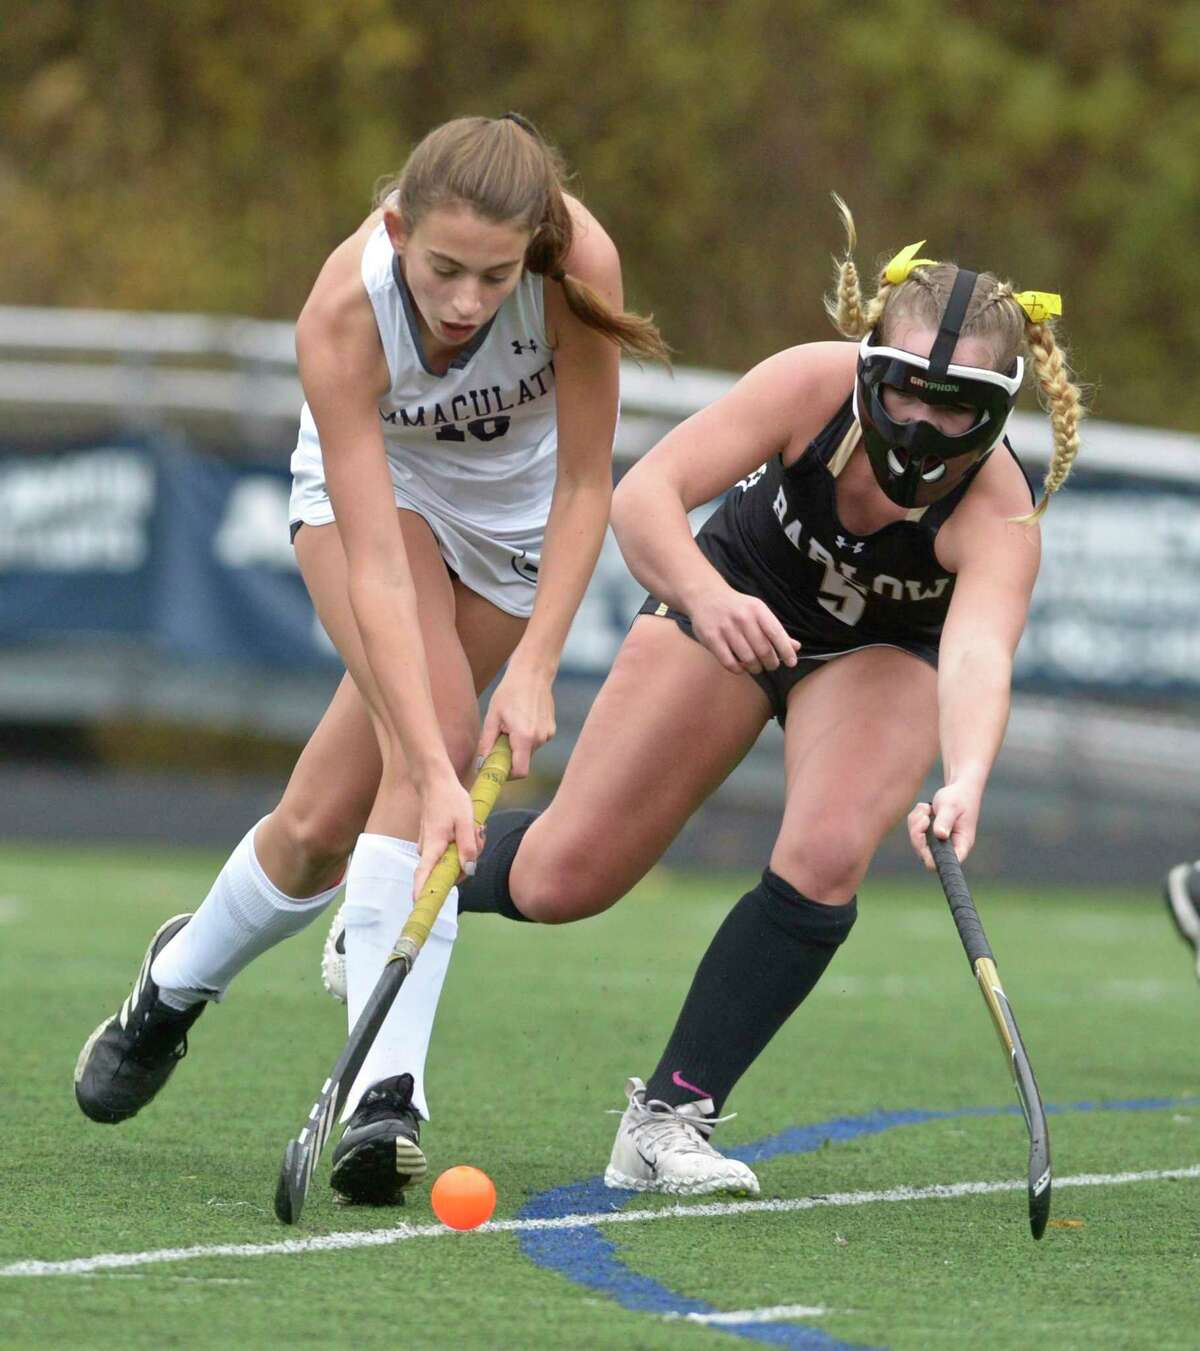 Immaculate's Julia Cirone (10) and Joel Barlow's Ashley Starrett (5) fight for the ball in the championship game between No. 3 Joel Barlow and No. 1 Immaculate high schools, Friday afternoon, November 13, 2020 at Immaculate High School, Danbury, Conn.